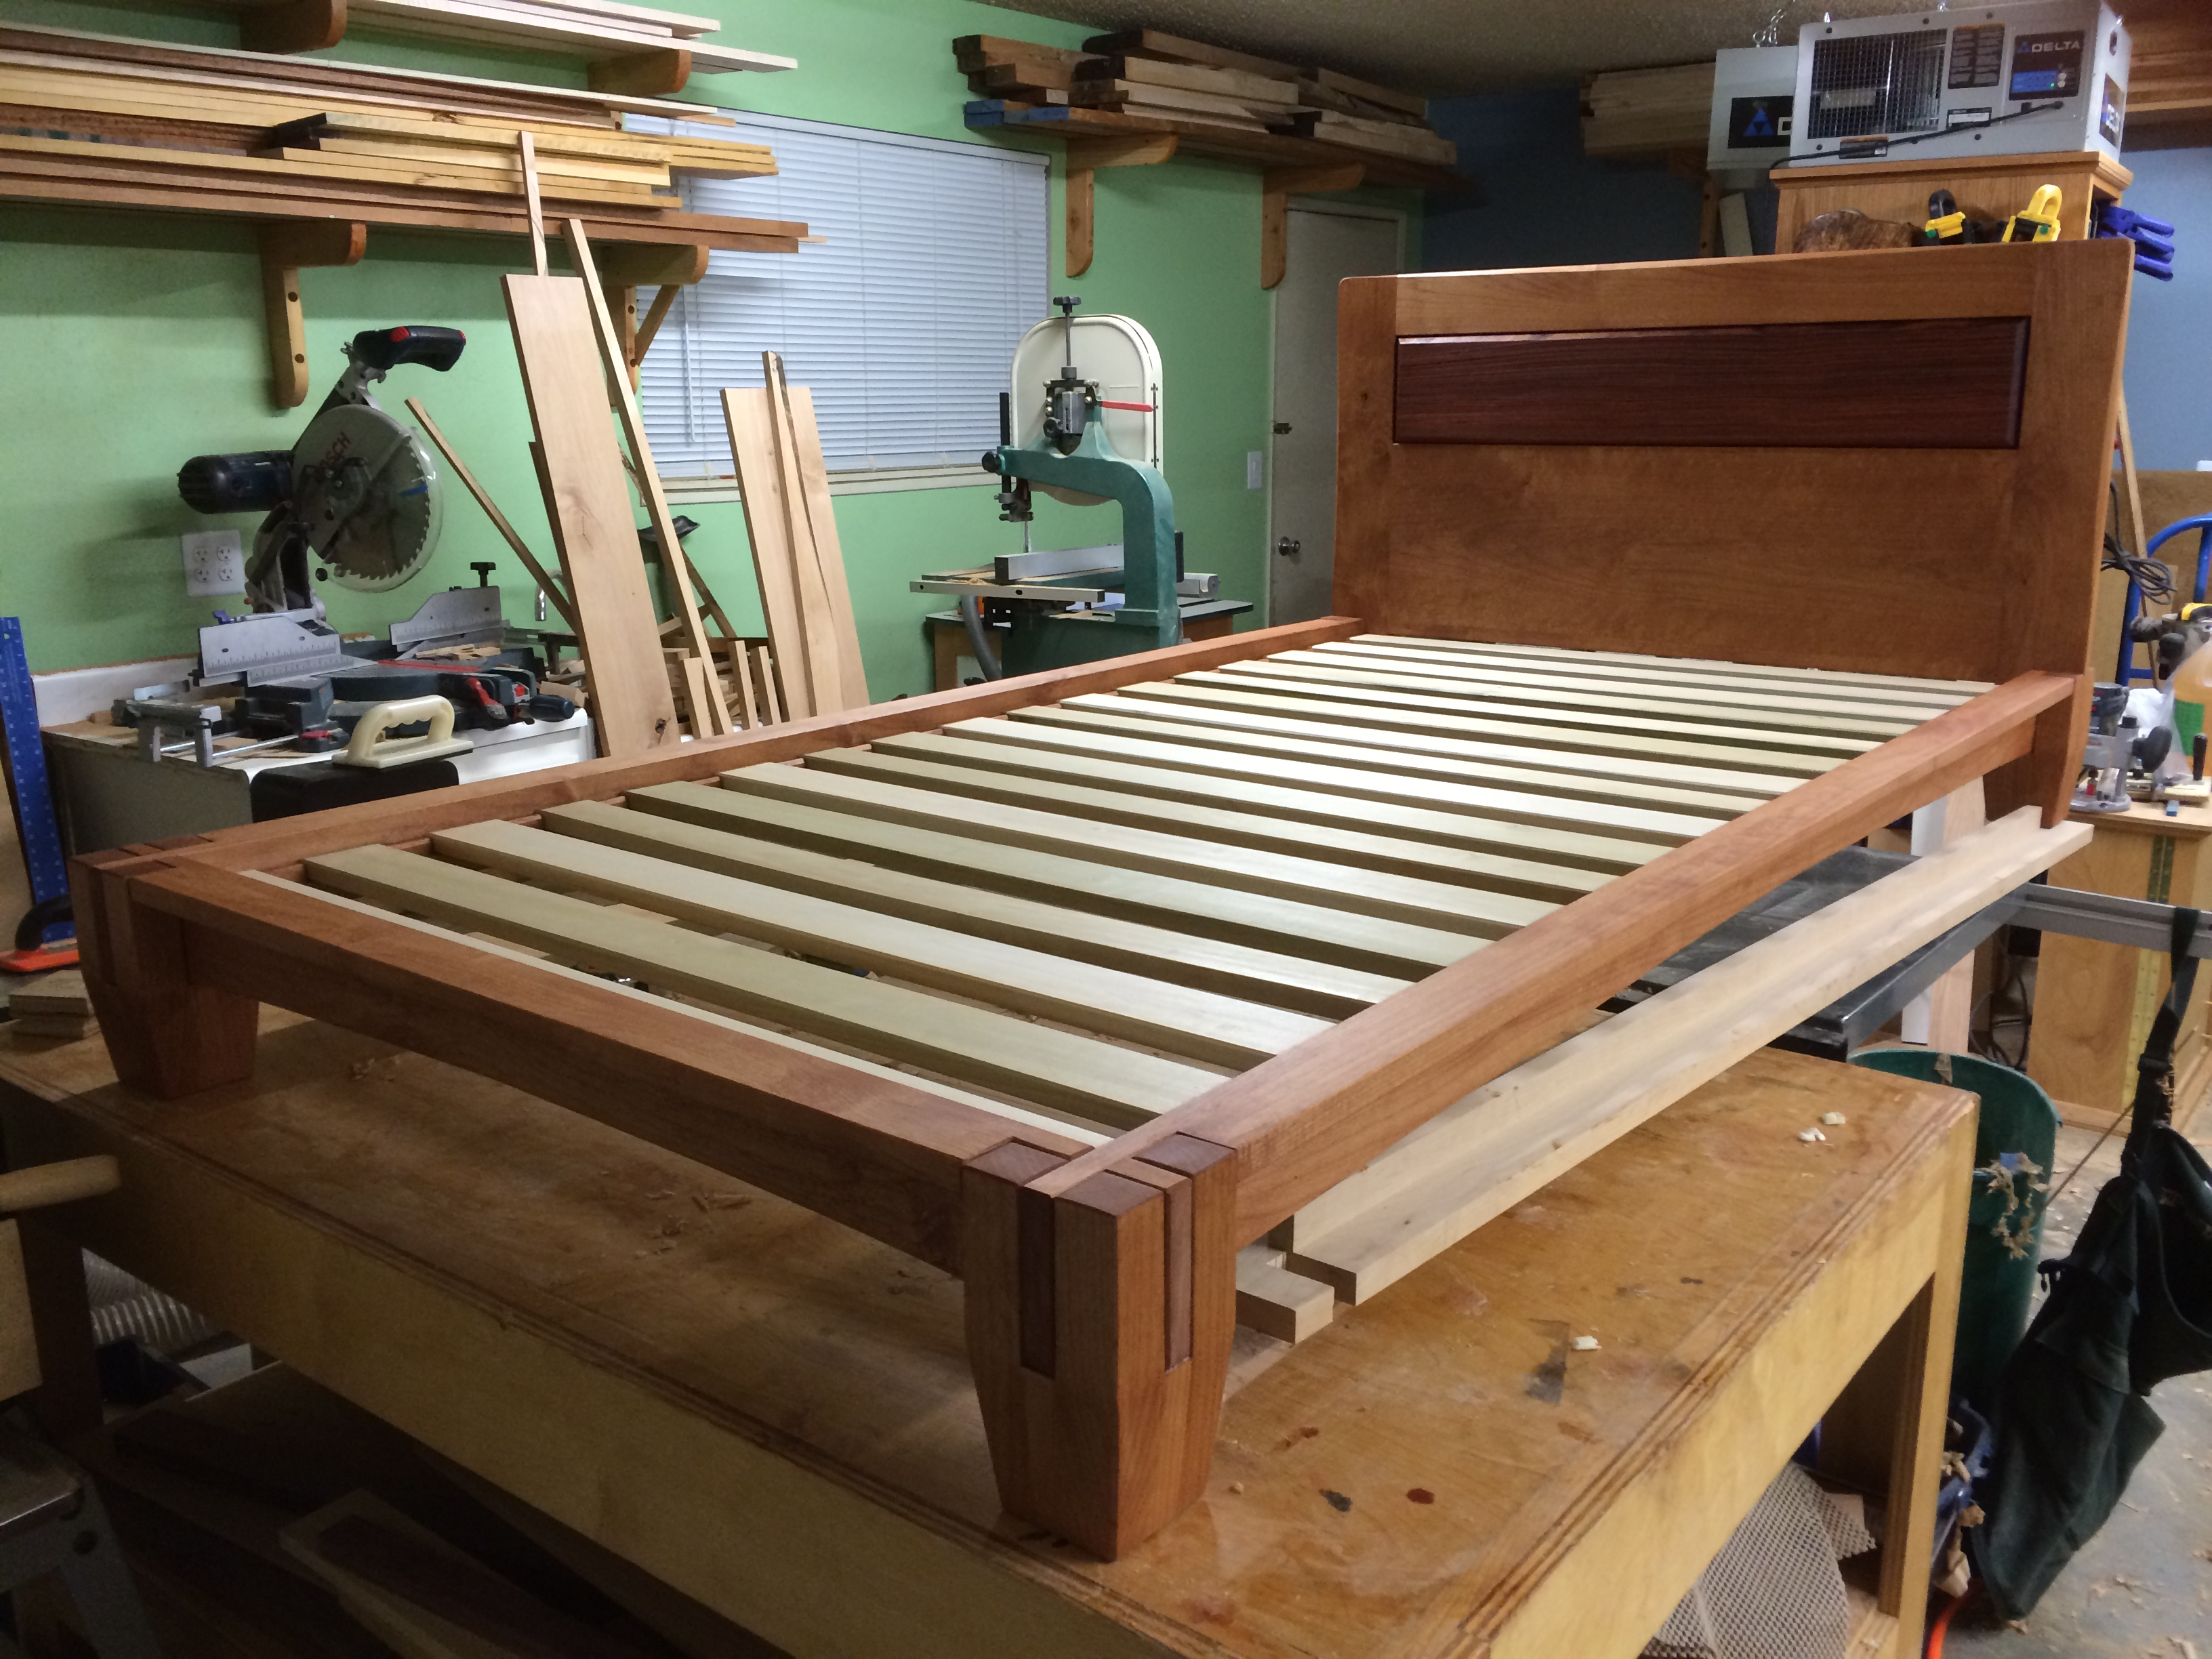 Diy Tatami Style Platform Bed With Downloadable Plans Woodworking